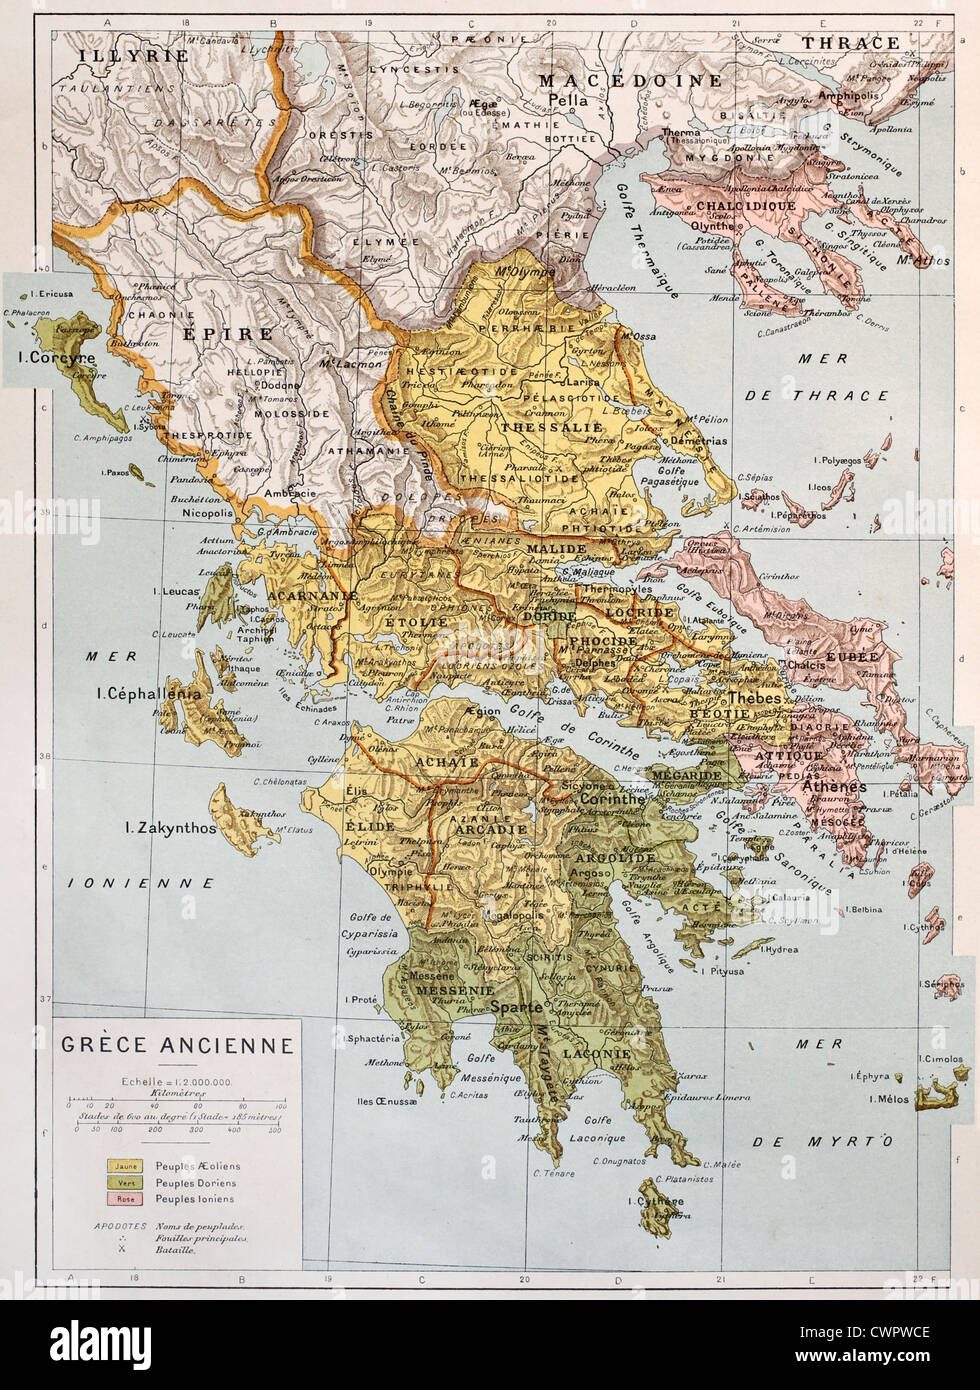 Old map of ancient greece stock photo 50290030 alamy old map of ancient greece gumiabroncs Images